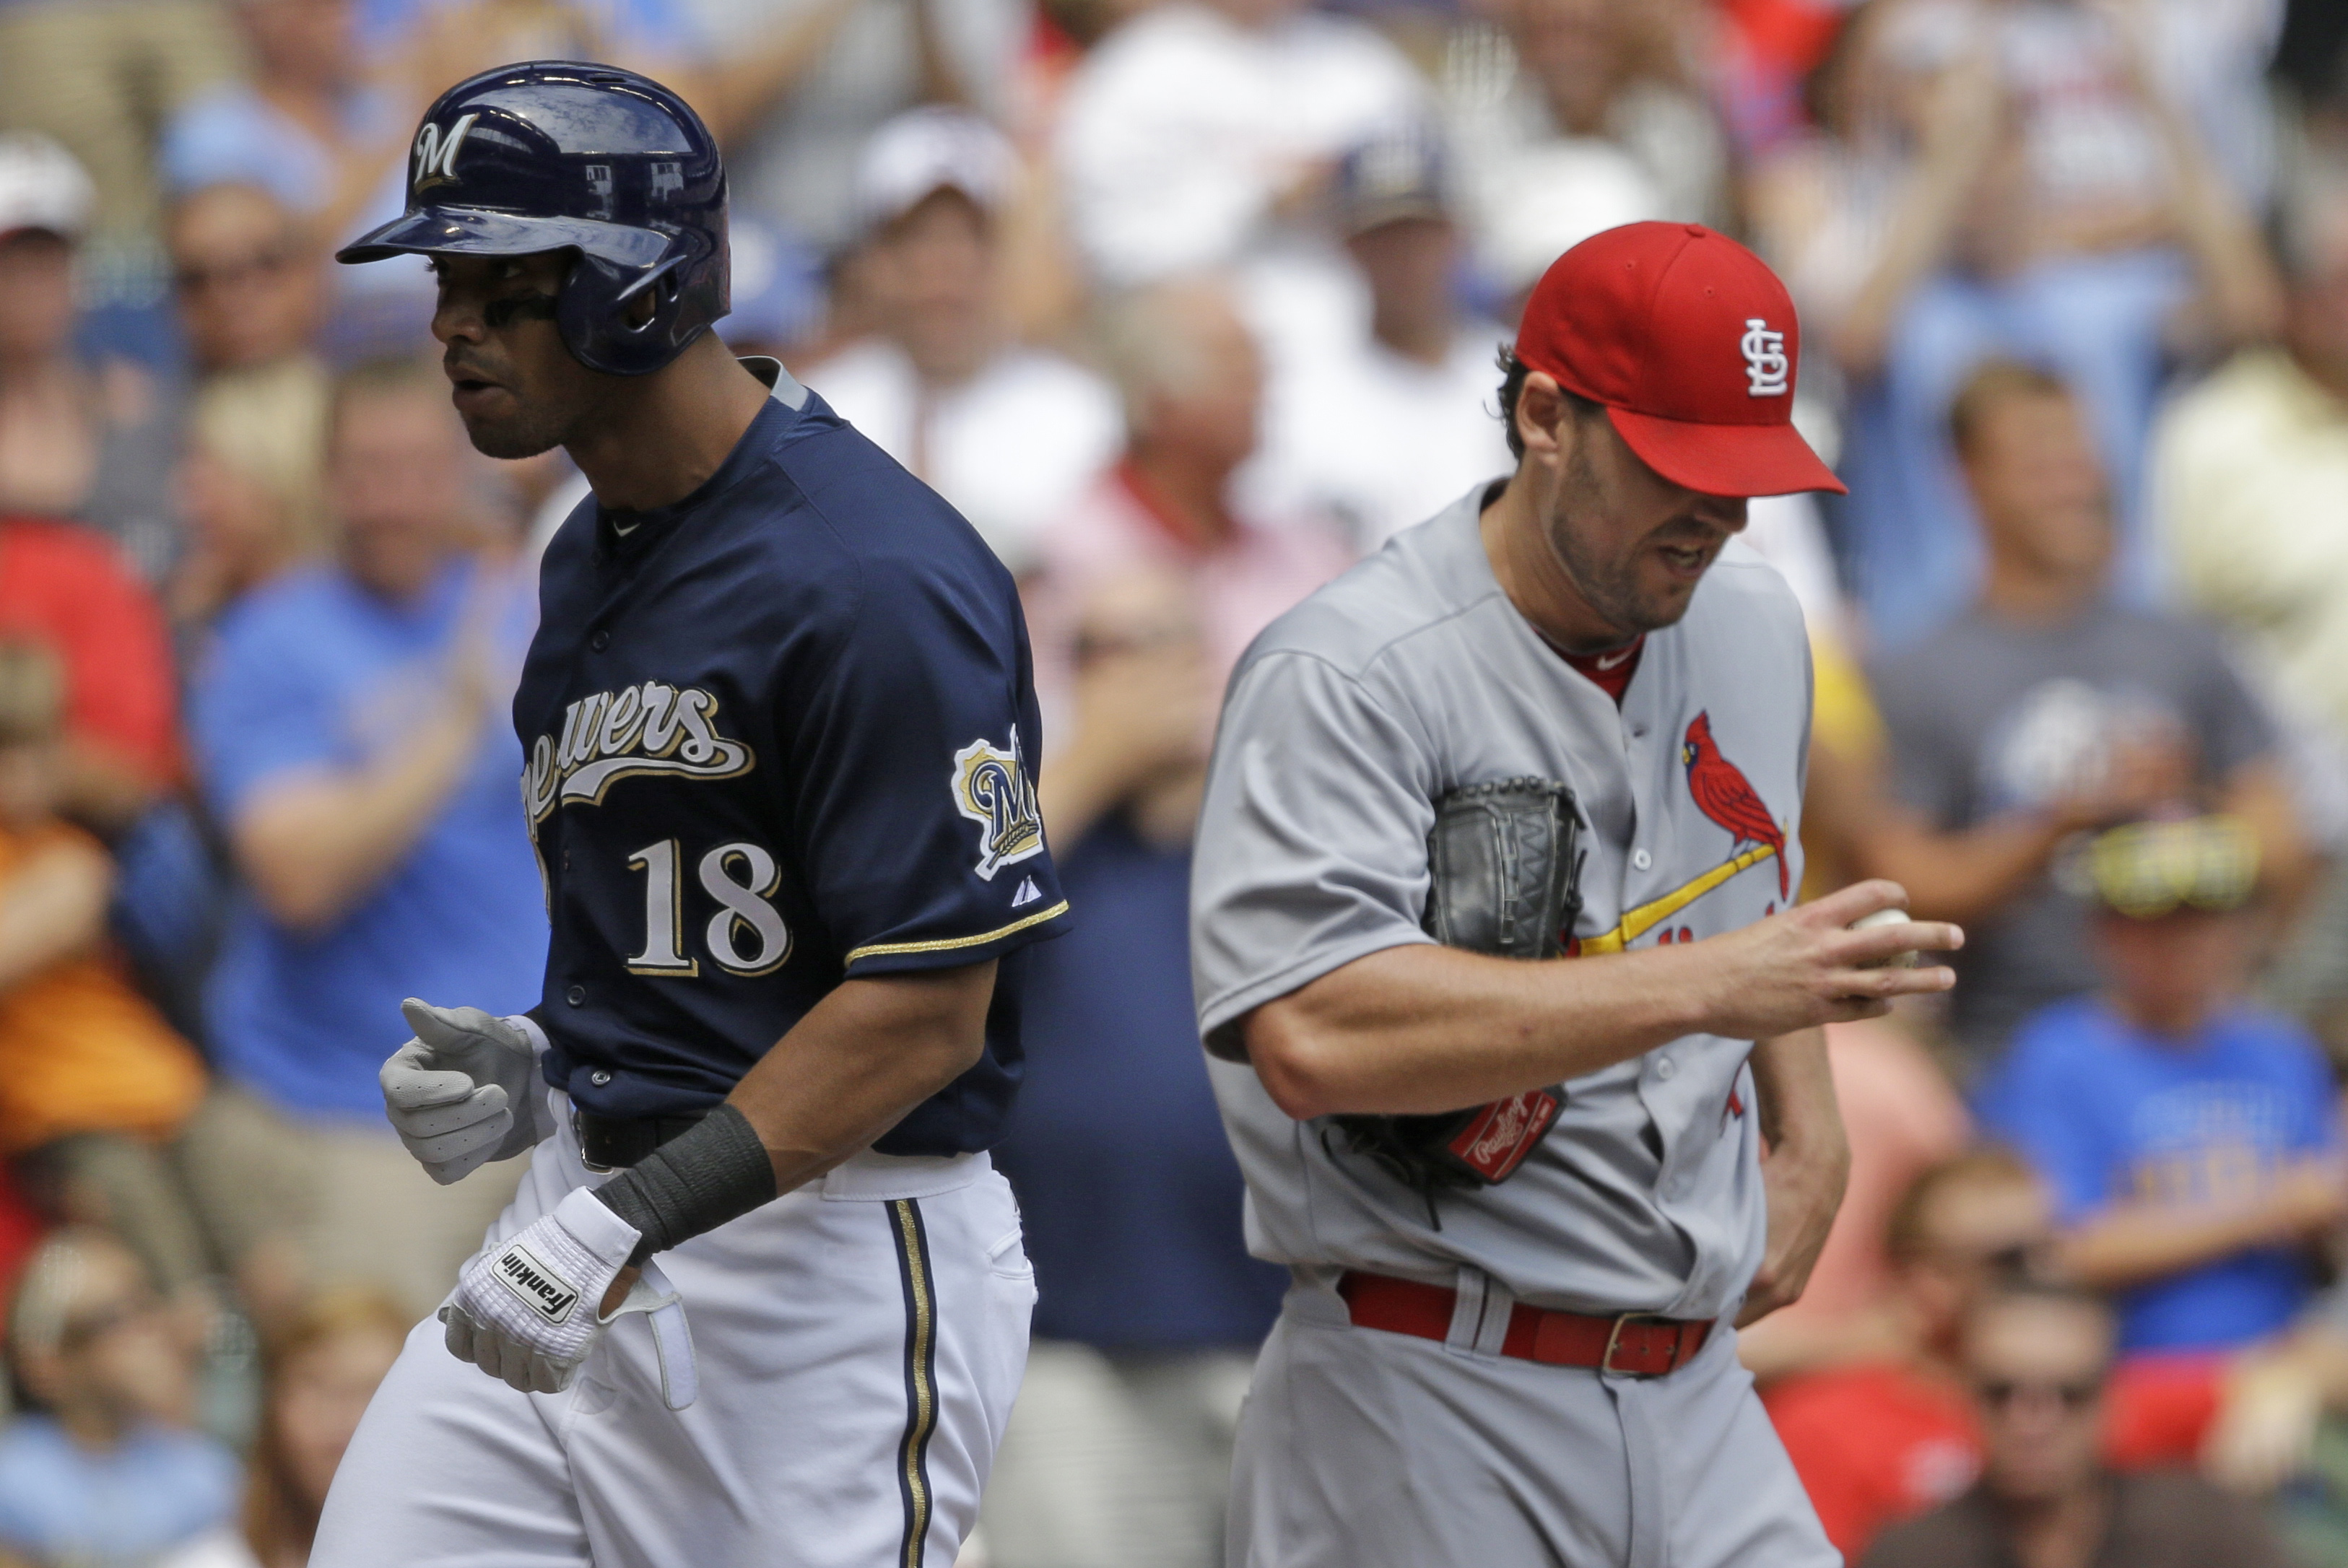 Milwaukee Brewers' Khris Davis(18) crosses home plate after his two-run home run against the St. Louis Cardinals' John Lackey, right, in the third inning of a baseball game, Sunday, Aug. 9, 2015, in Milwaukee. (AP Photo/Jeffrey Phelps)